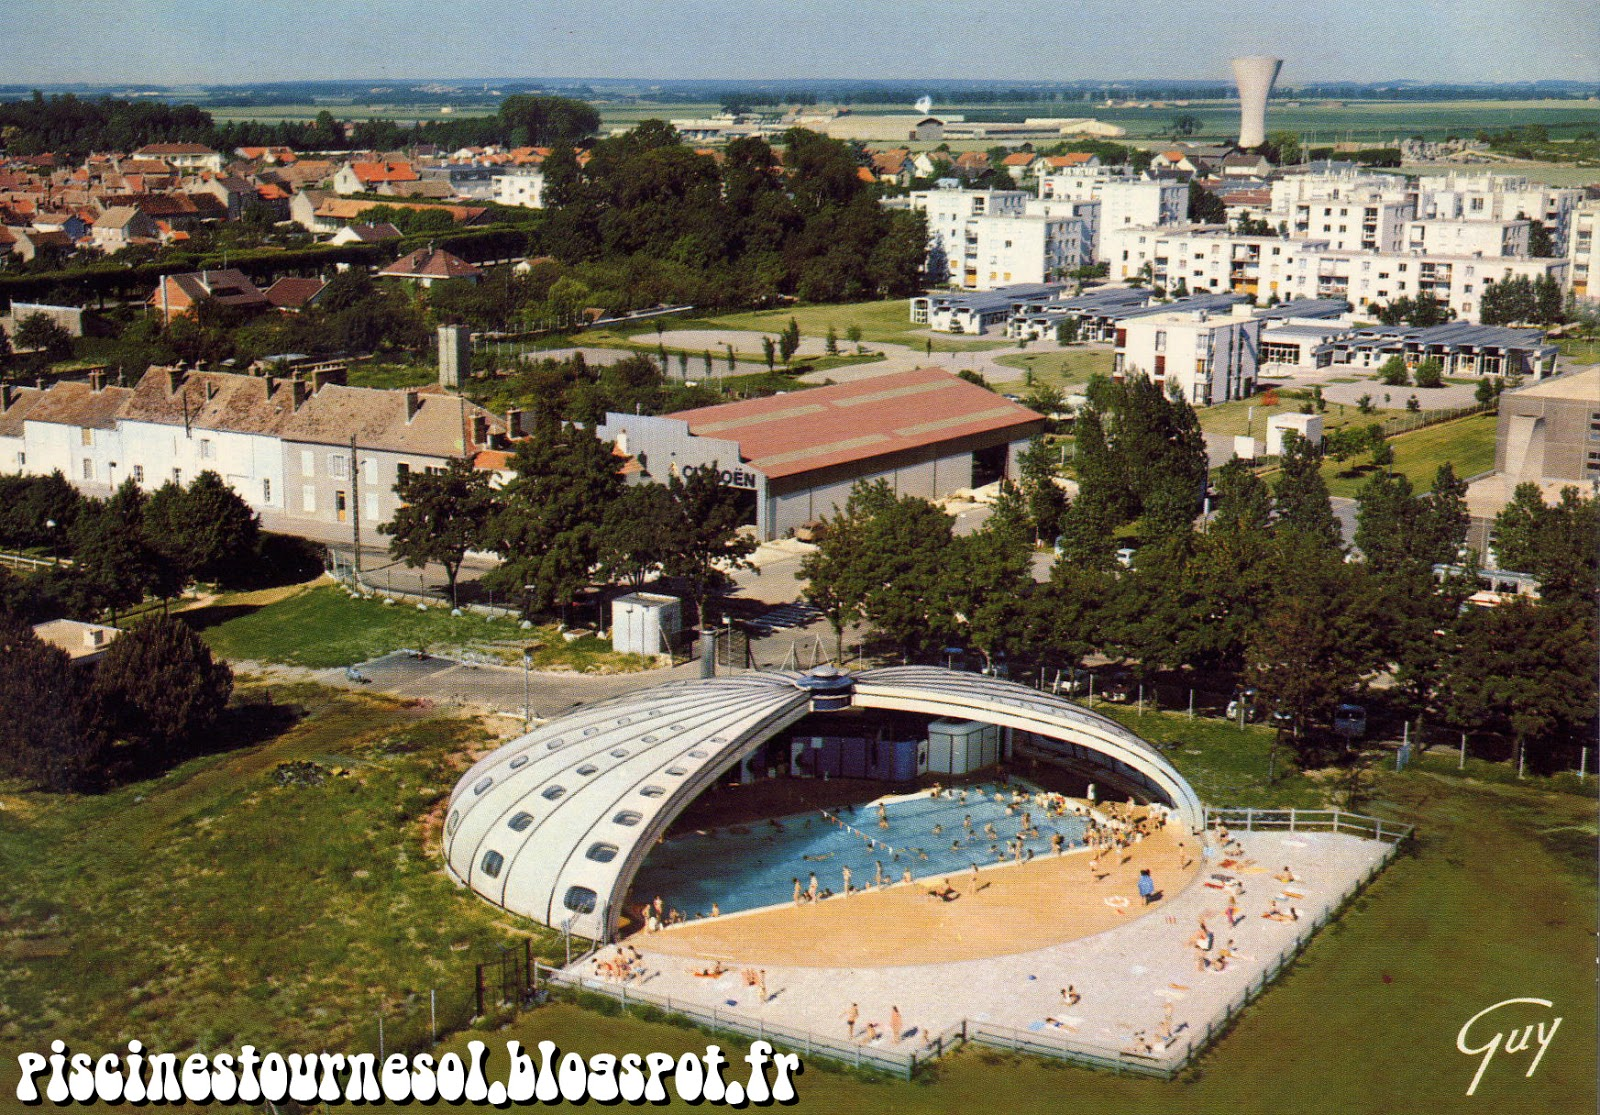 Piscines tournesol piscine tournesol nangis for Piscine la piscine